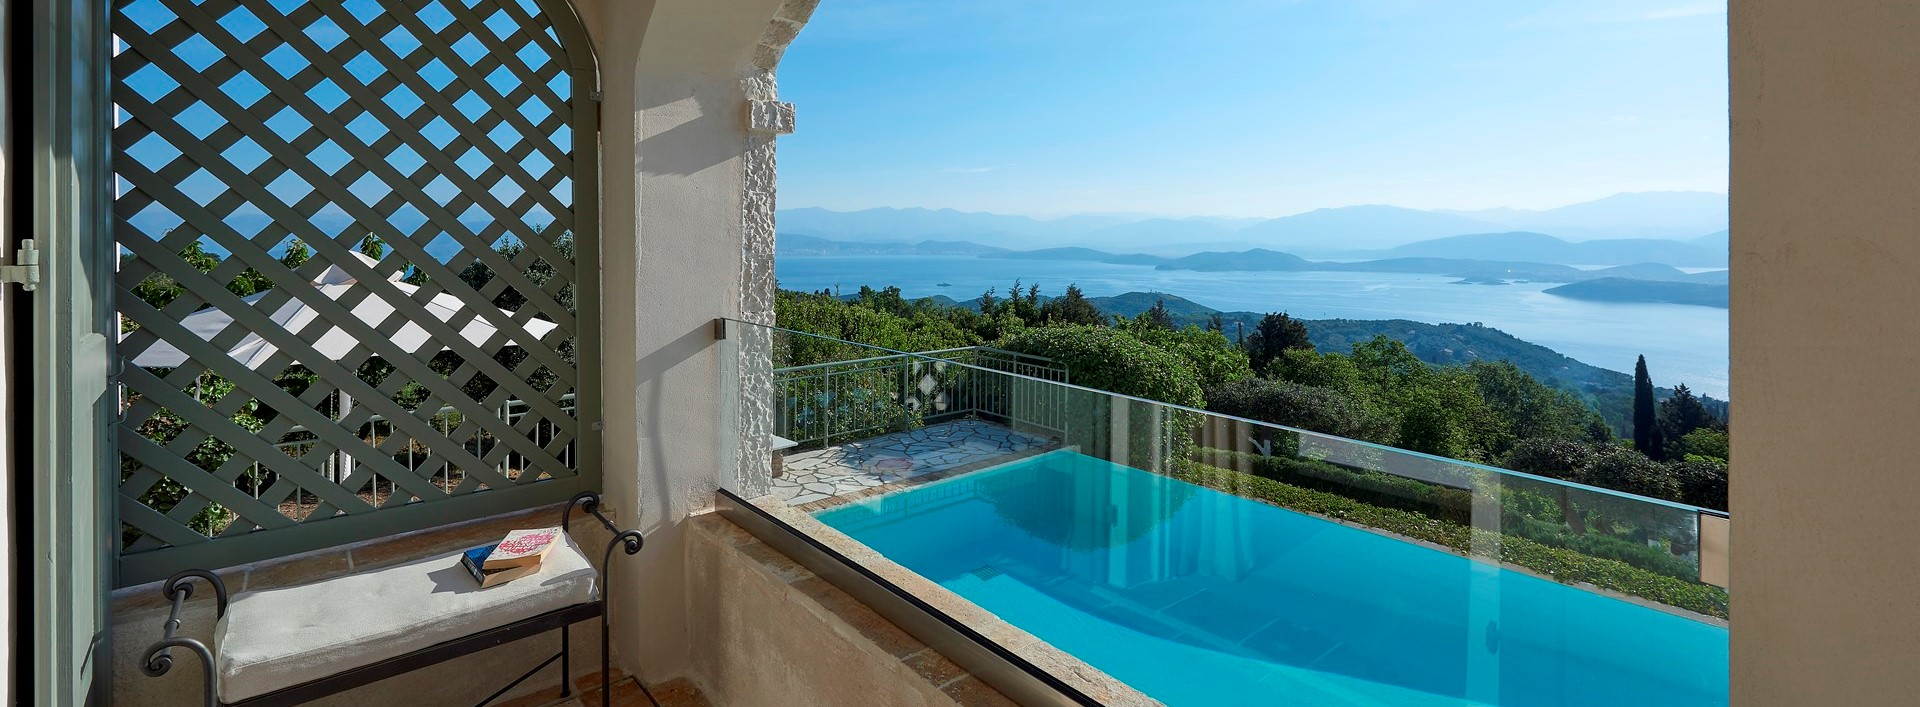 luxury-honeymoon-villa-corfu